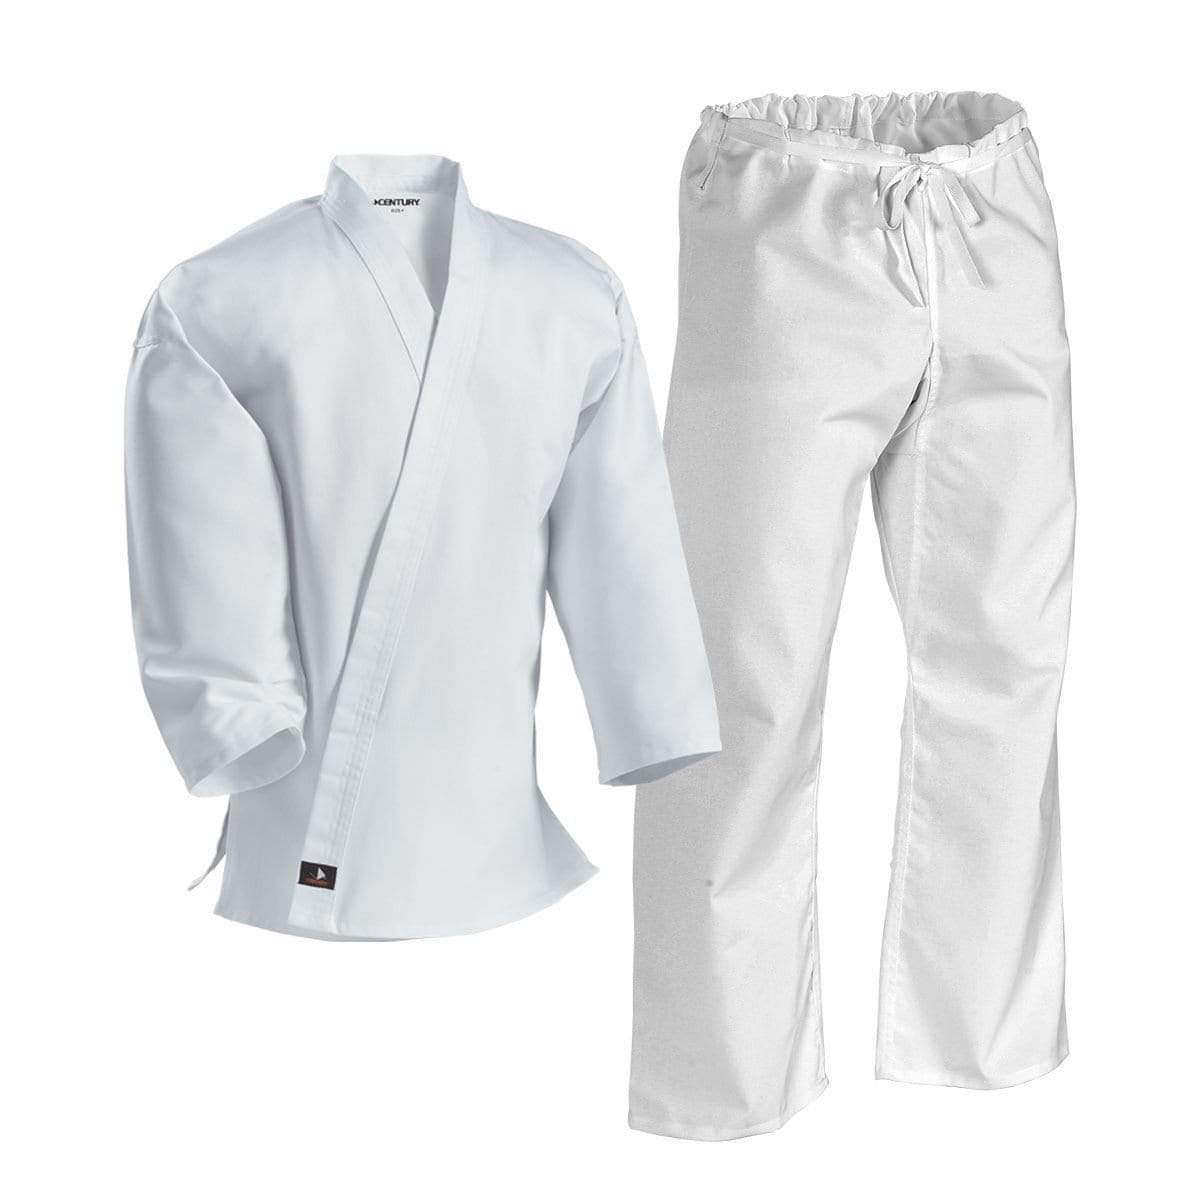 Middleweight Student Martial Arts Karate Uniform with Drawstring Pant c0461 - BlackBeltShop